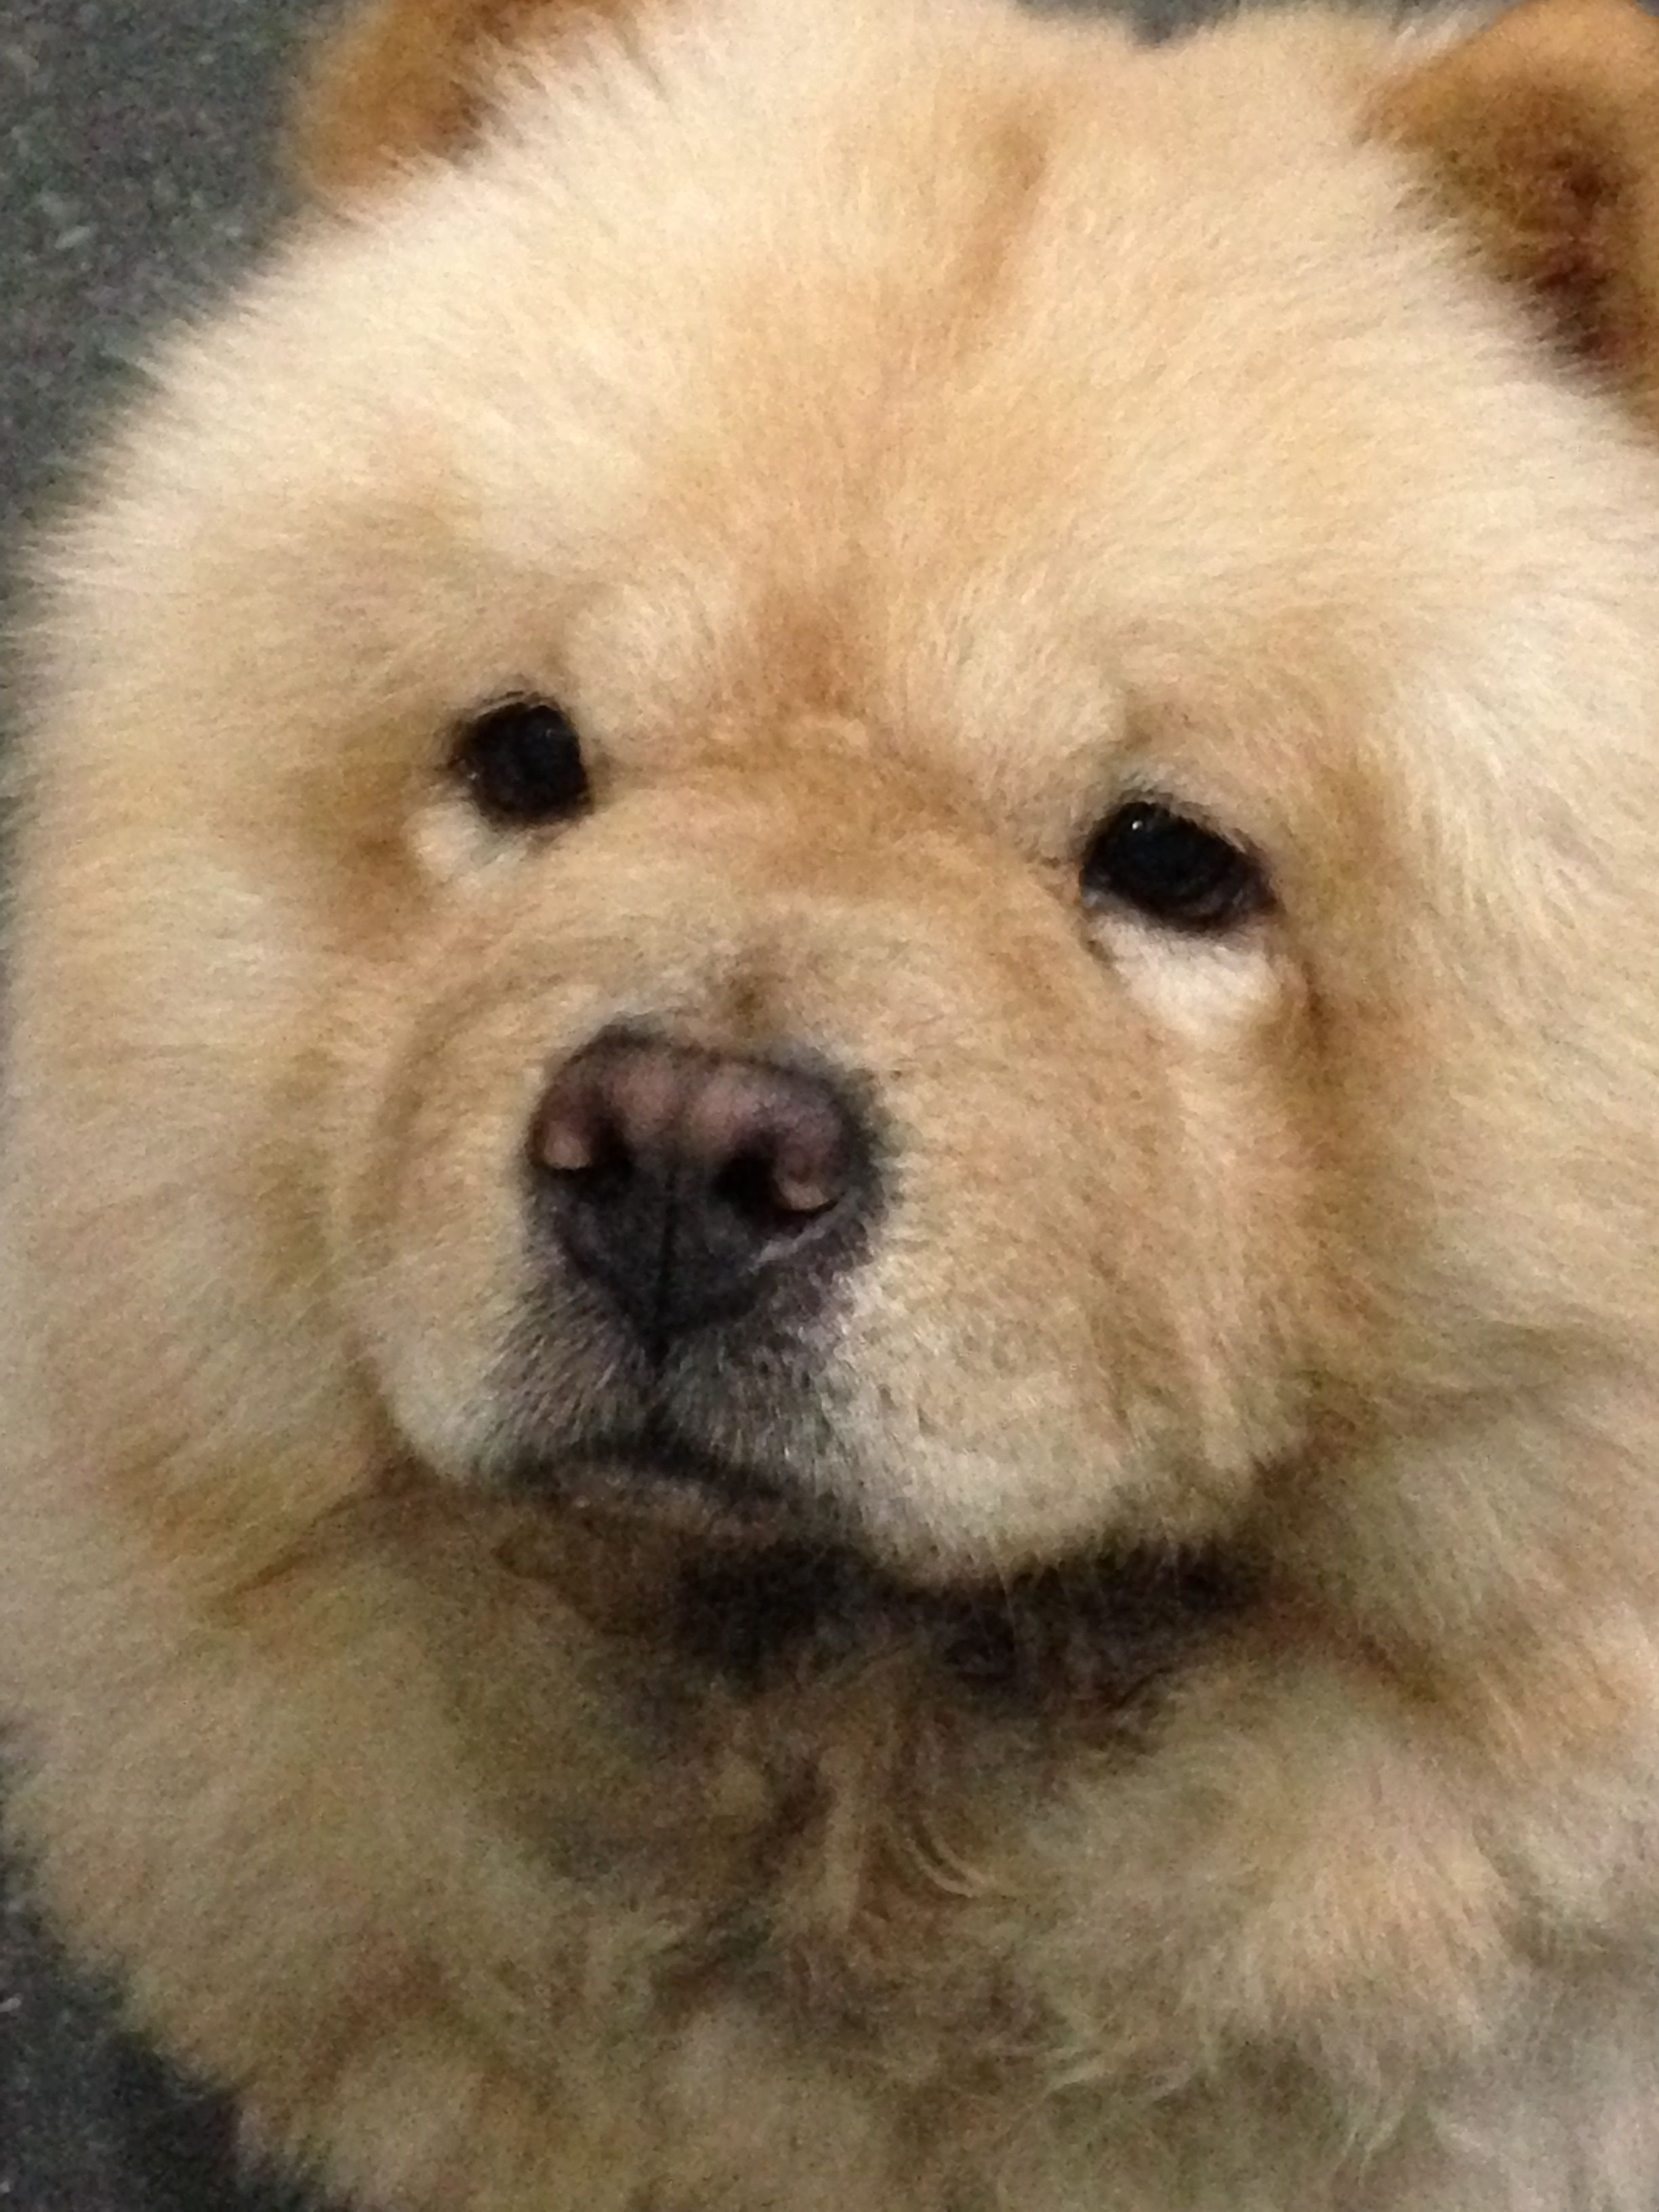 Boo The Dog Image By Nique Aja On Chowchow Chow Chow Dogs